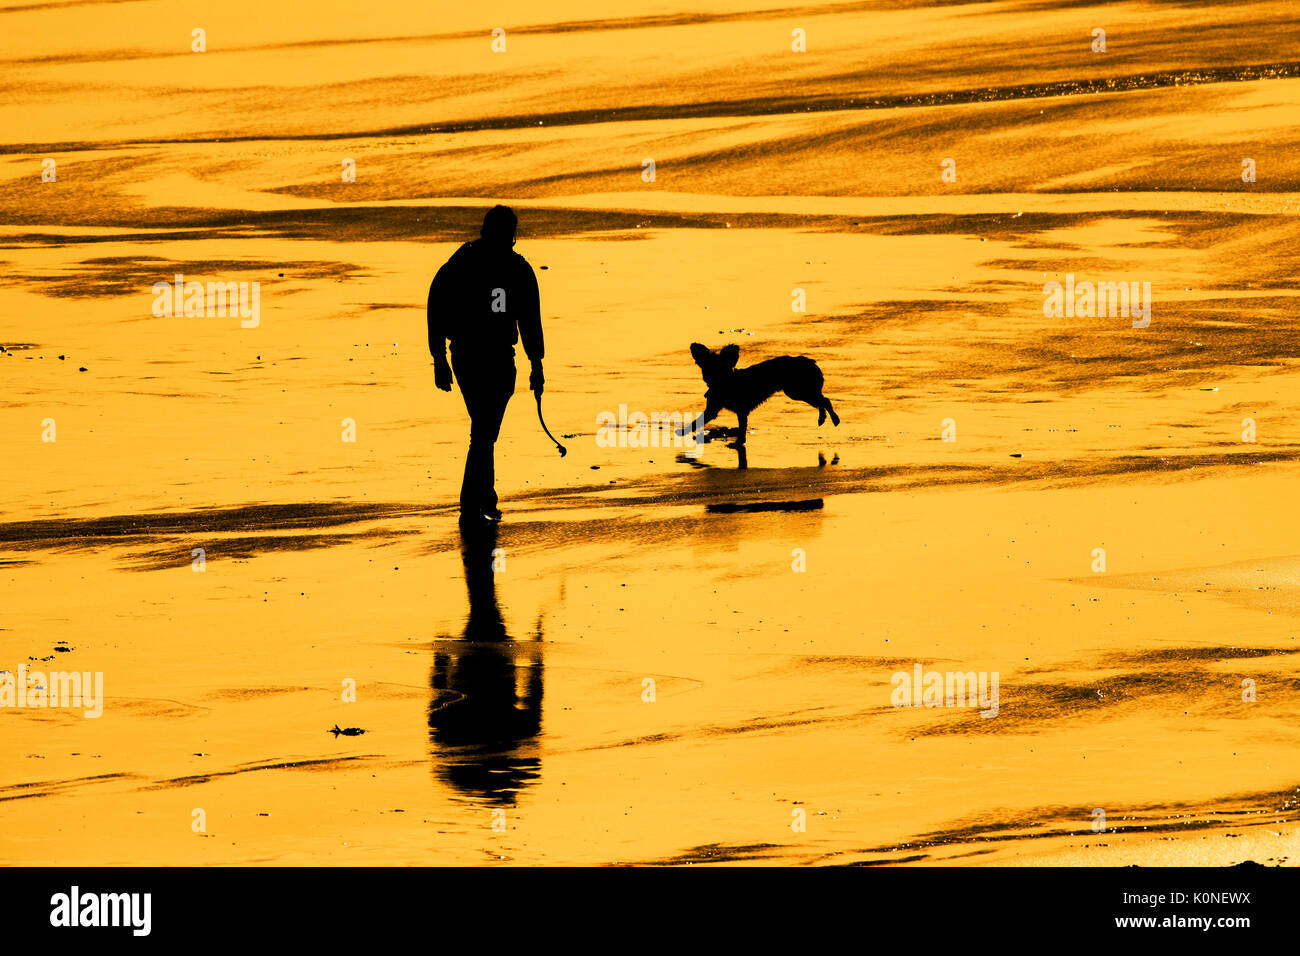 The silhouette of a man walking with his dog on a beach at sunset. Stock Photo